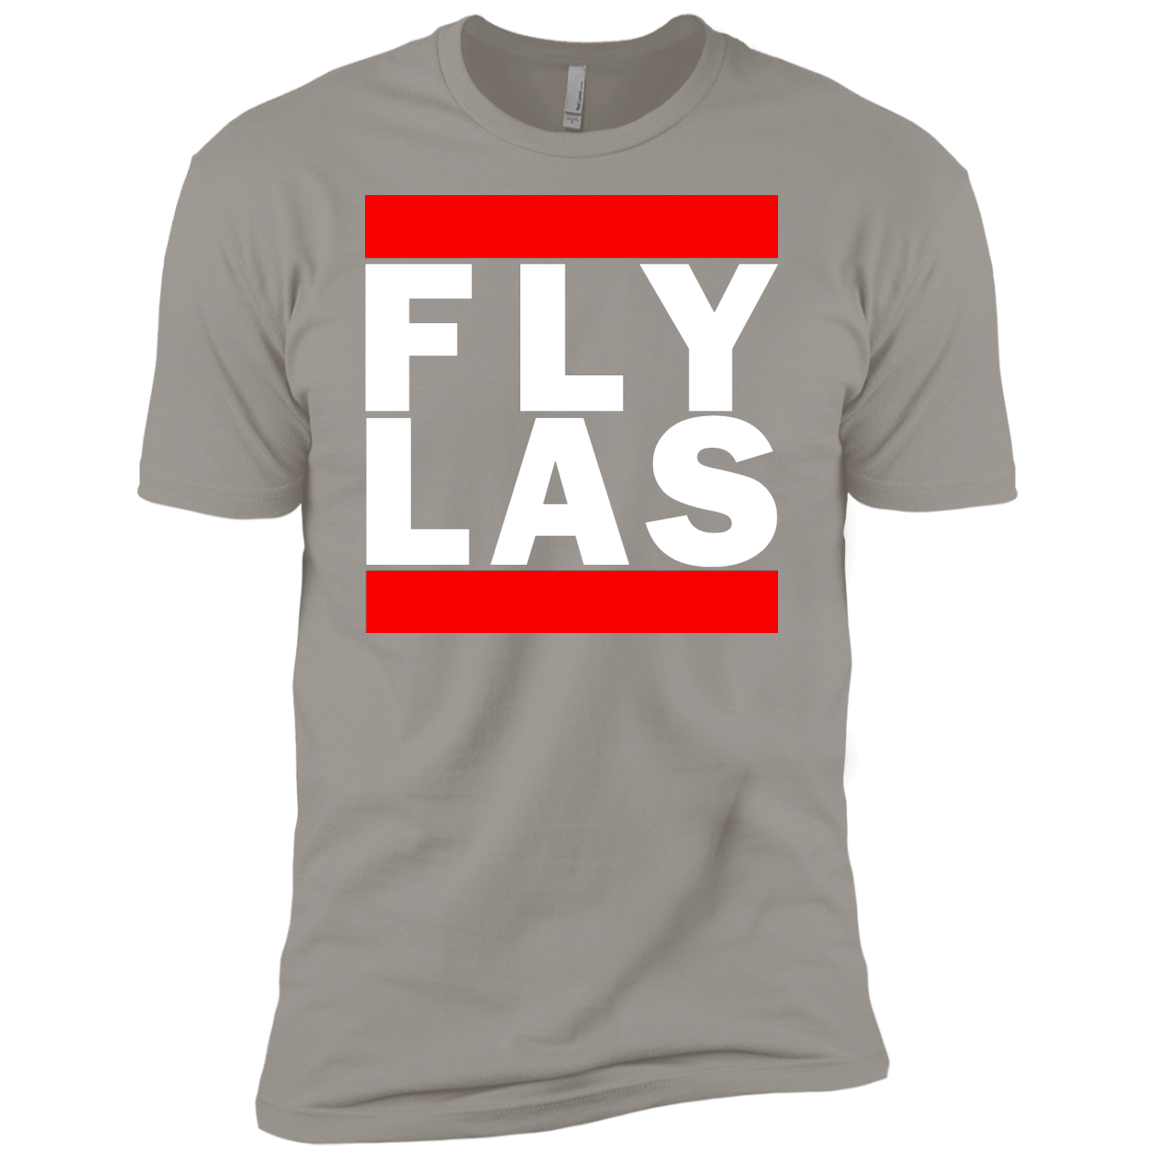 MEN'S FLY LAS (LAS VEGAS) CLASSIC WHITE PRINT SHIRTS